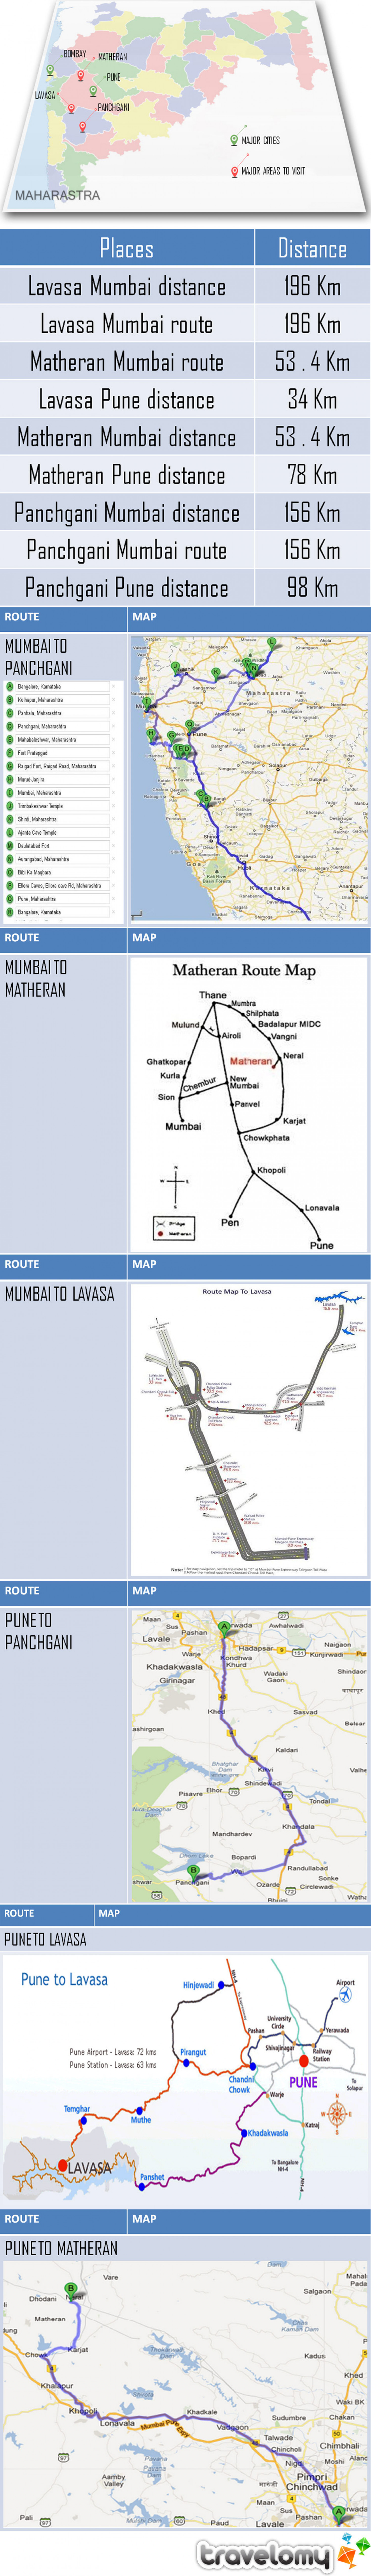 Distance and Route Map of Maharstra Tourist Destinations Infographic